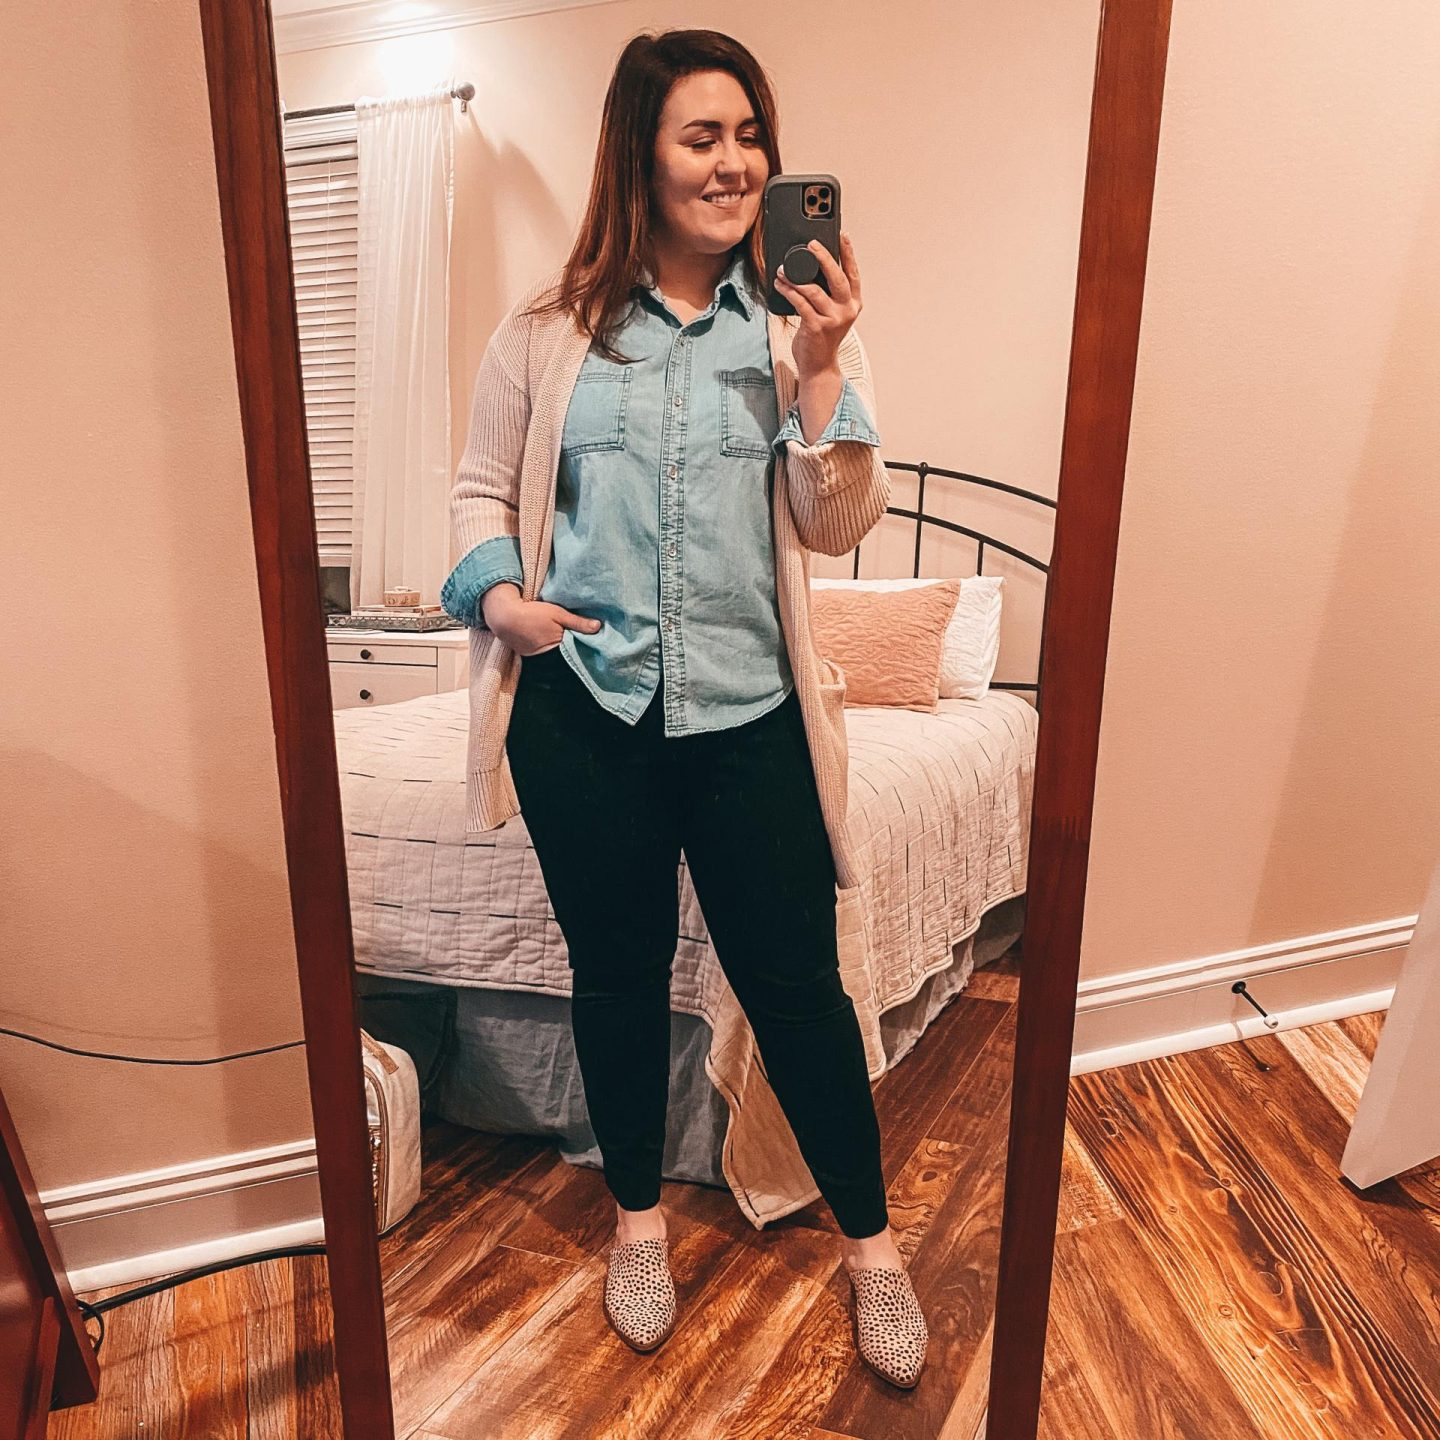 NC blogger Rebecca Lately is sharing her recent outfits. From casual weekend outfits to workwear, these will inspire you!